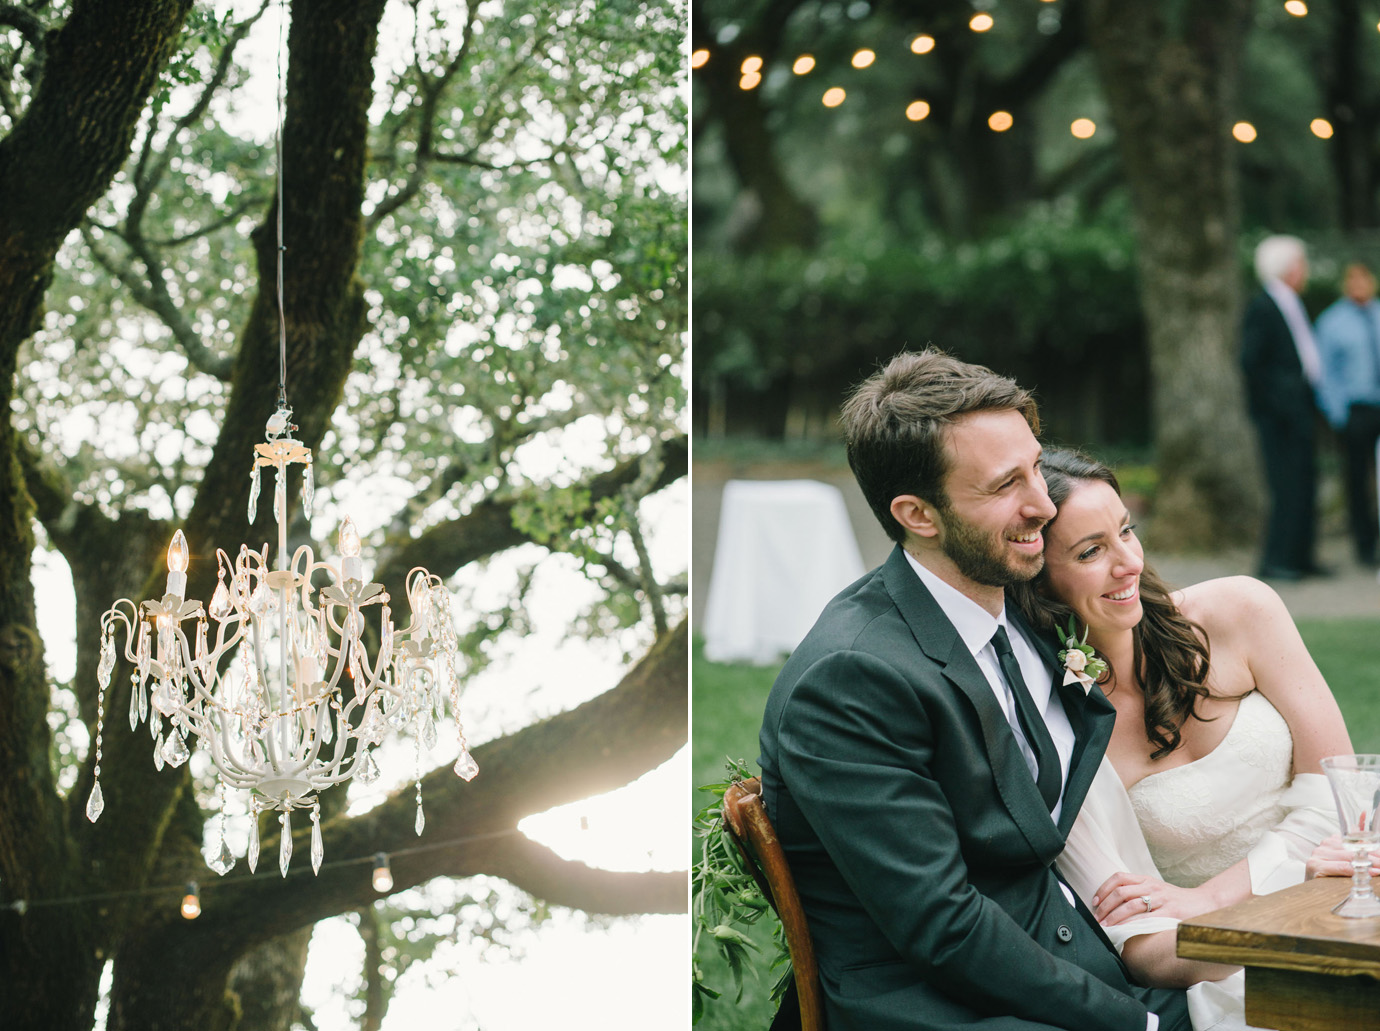 32-real-wedding-at-beltane-ranch001